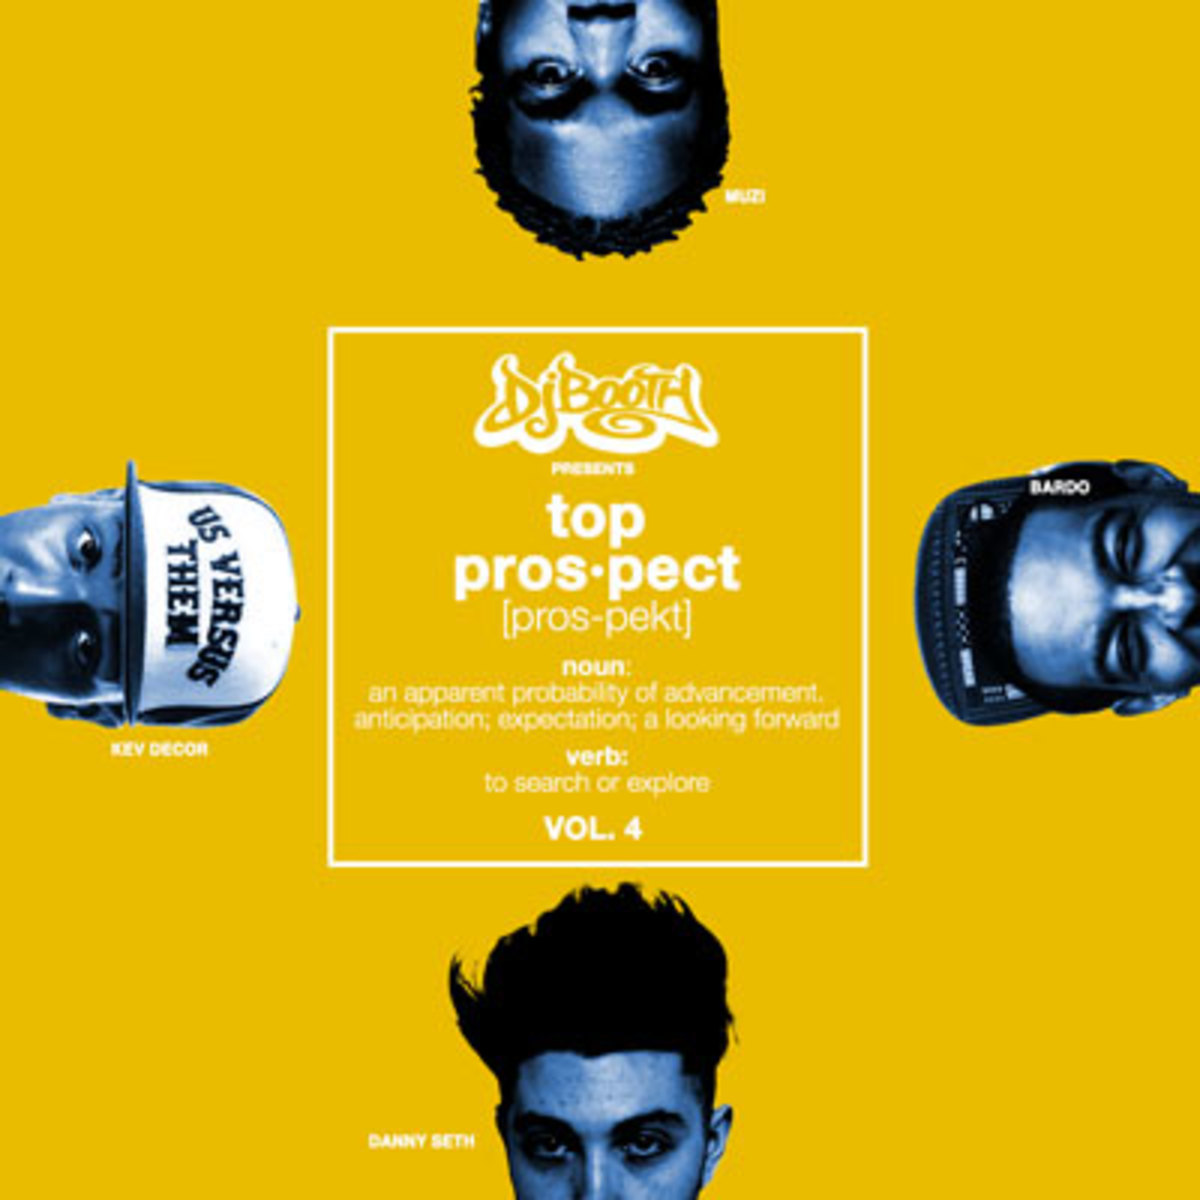 djbooth-top-prospects-vol-4.jpg